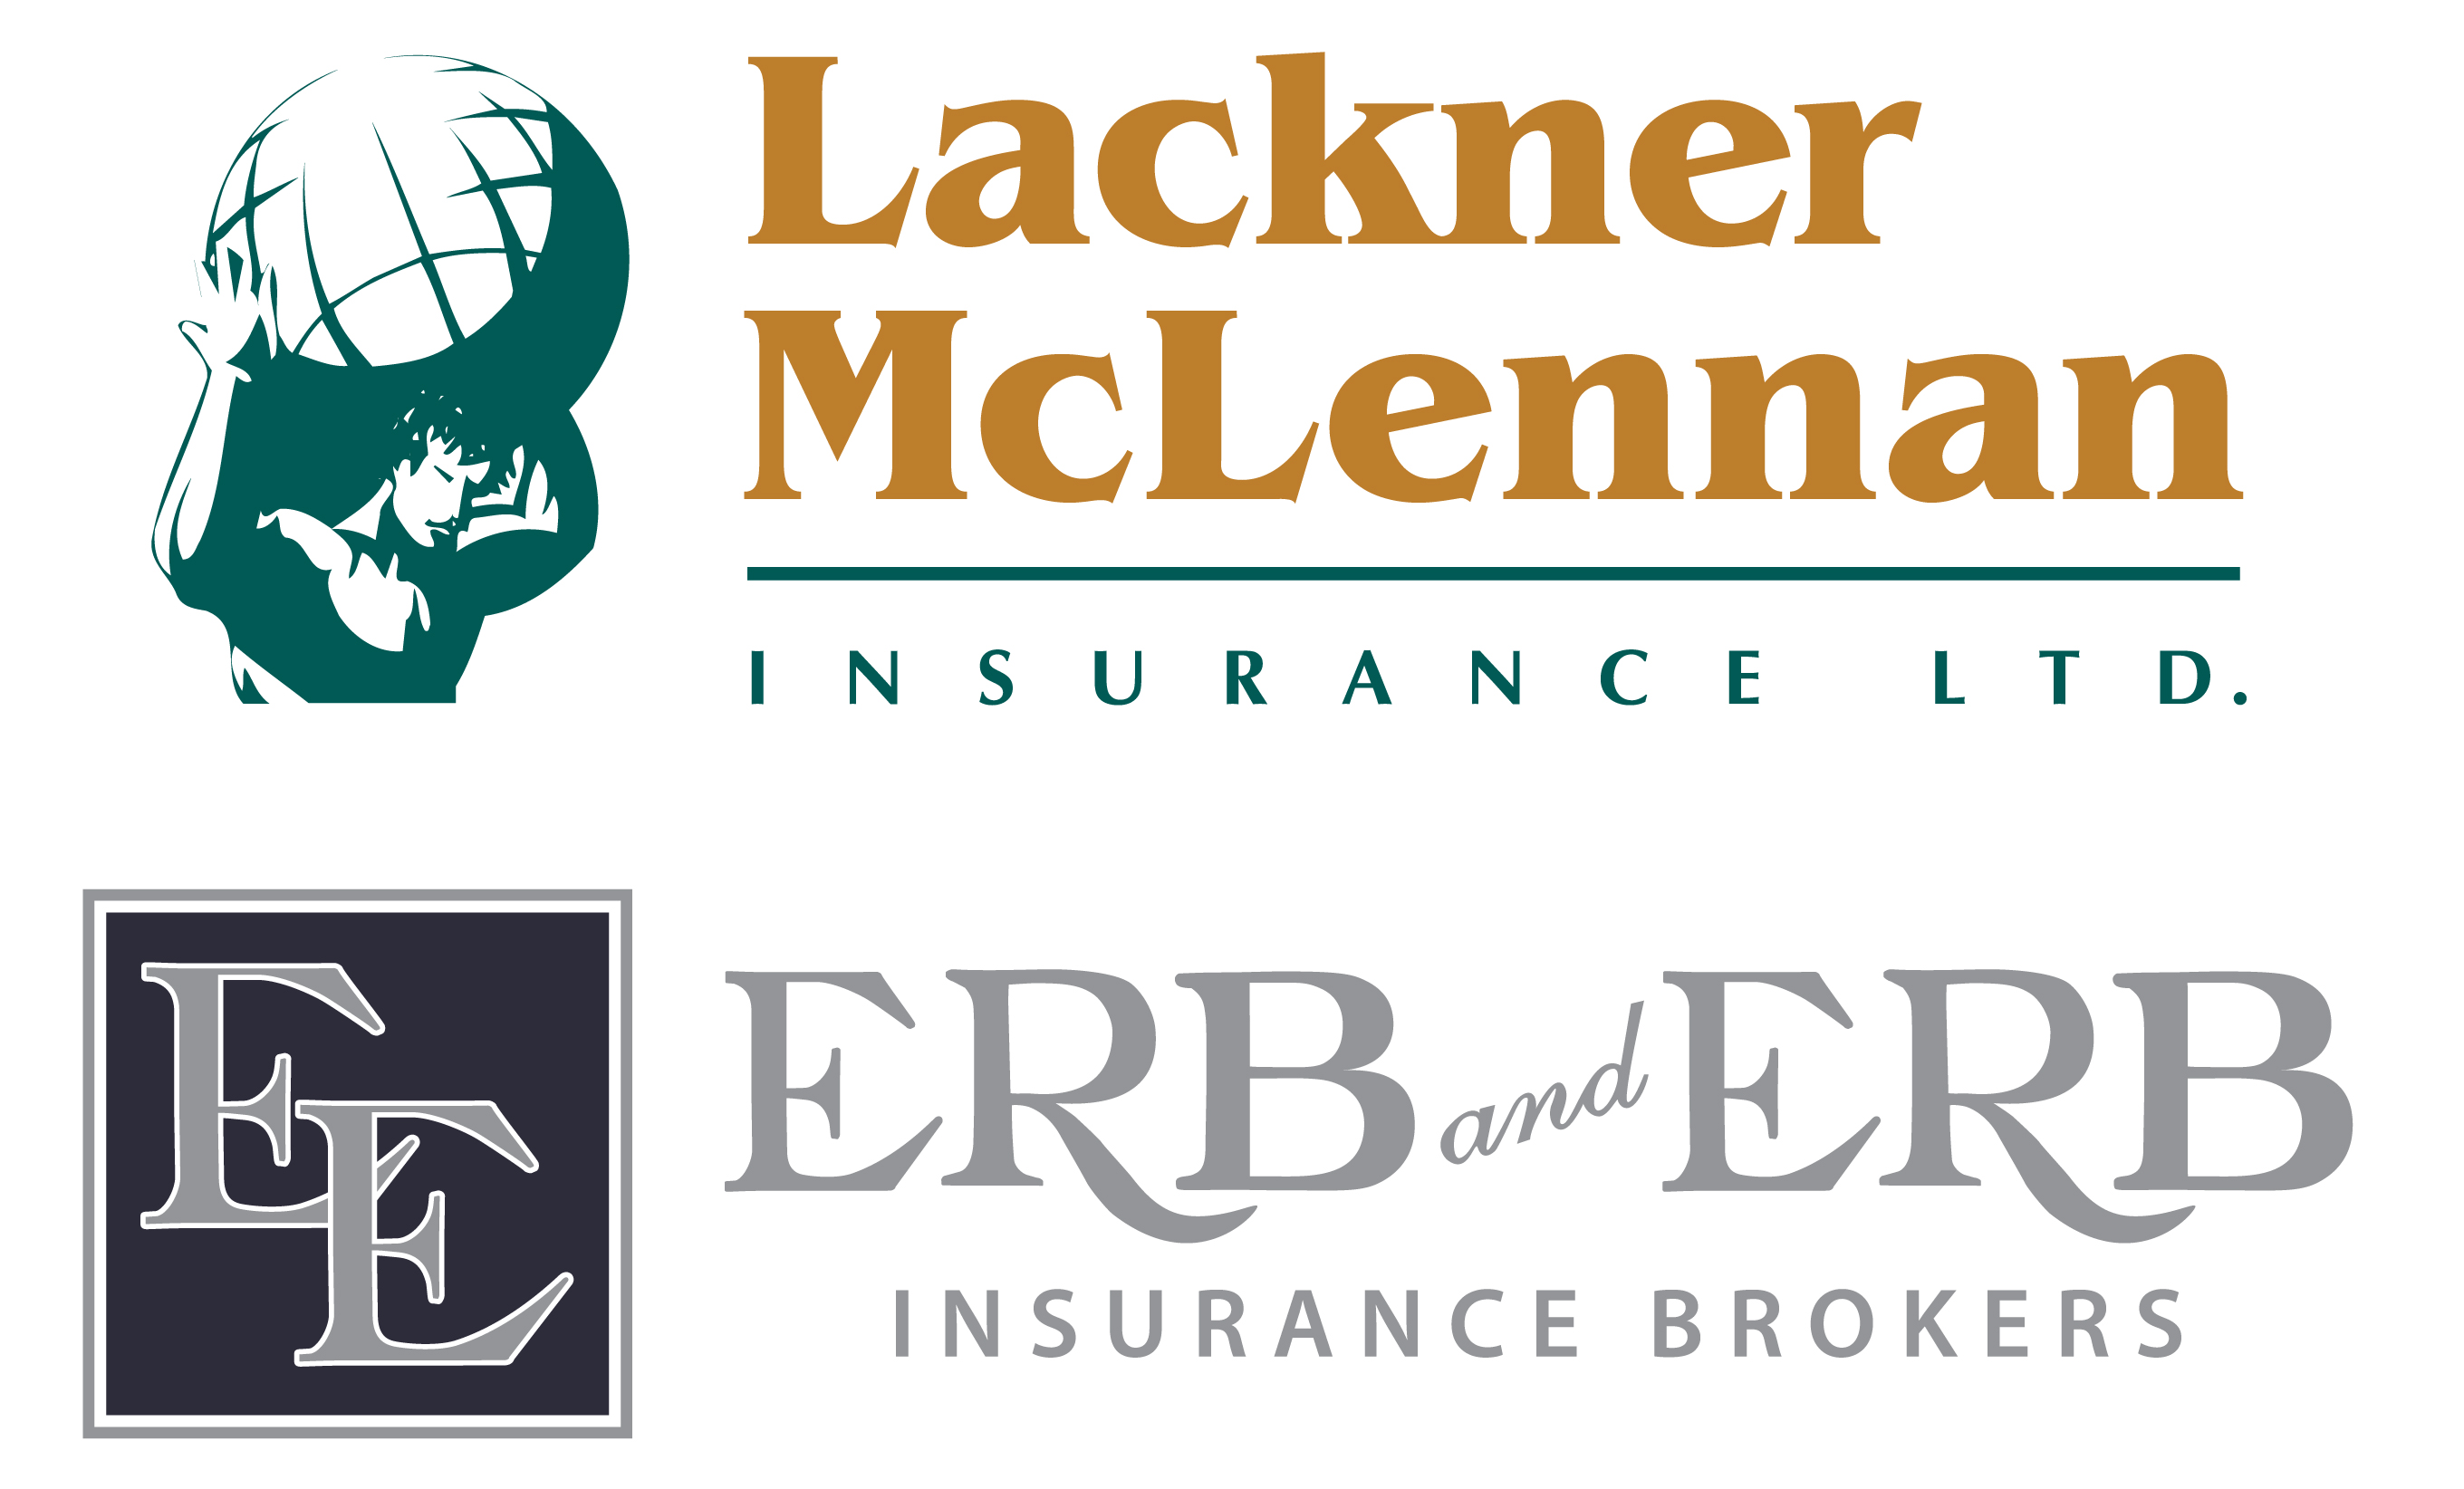 Lackner McLennan & Erb and Erb Insurance Brokers